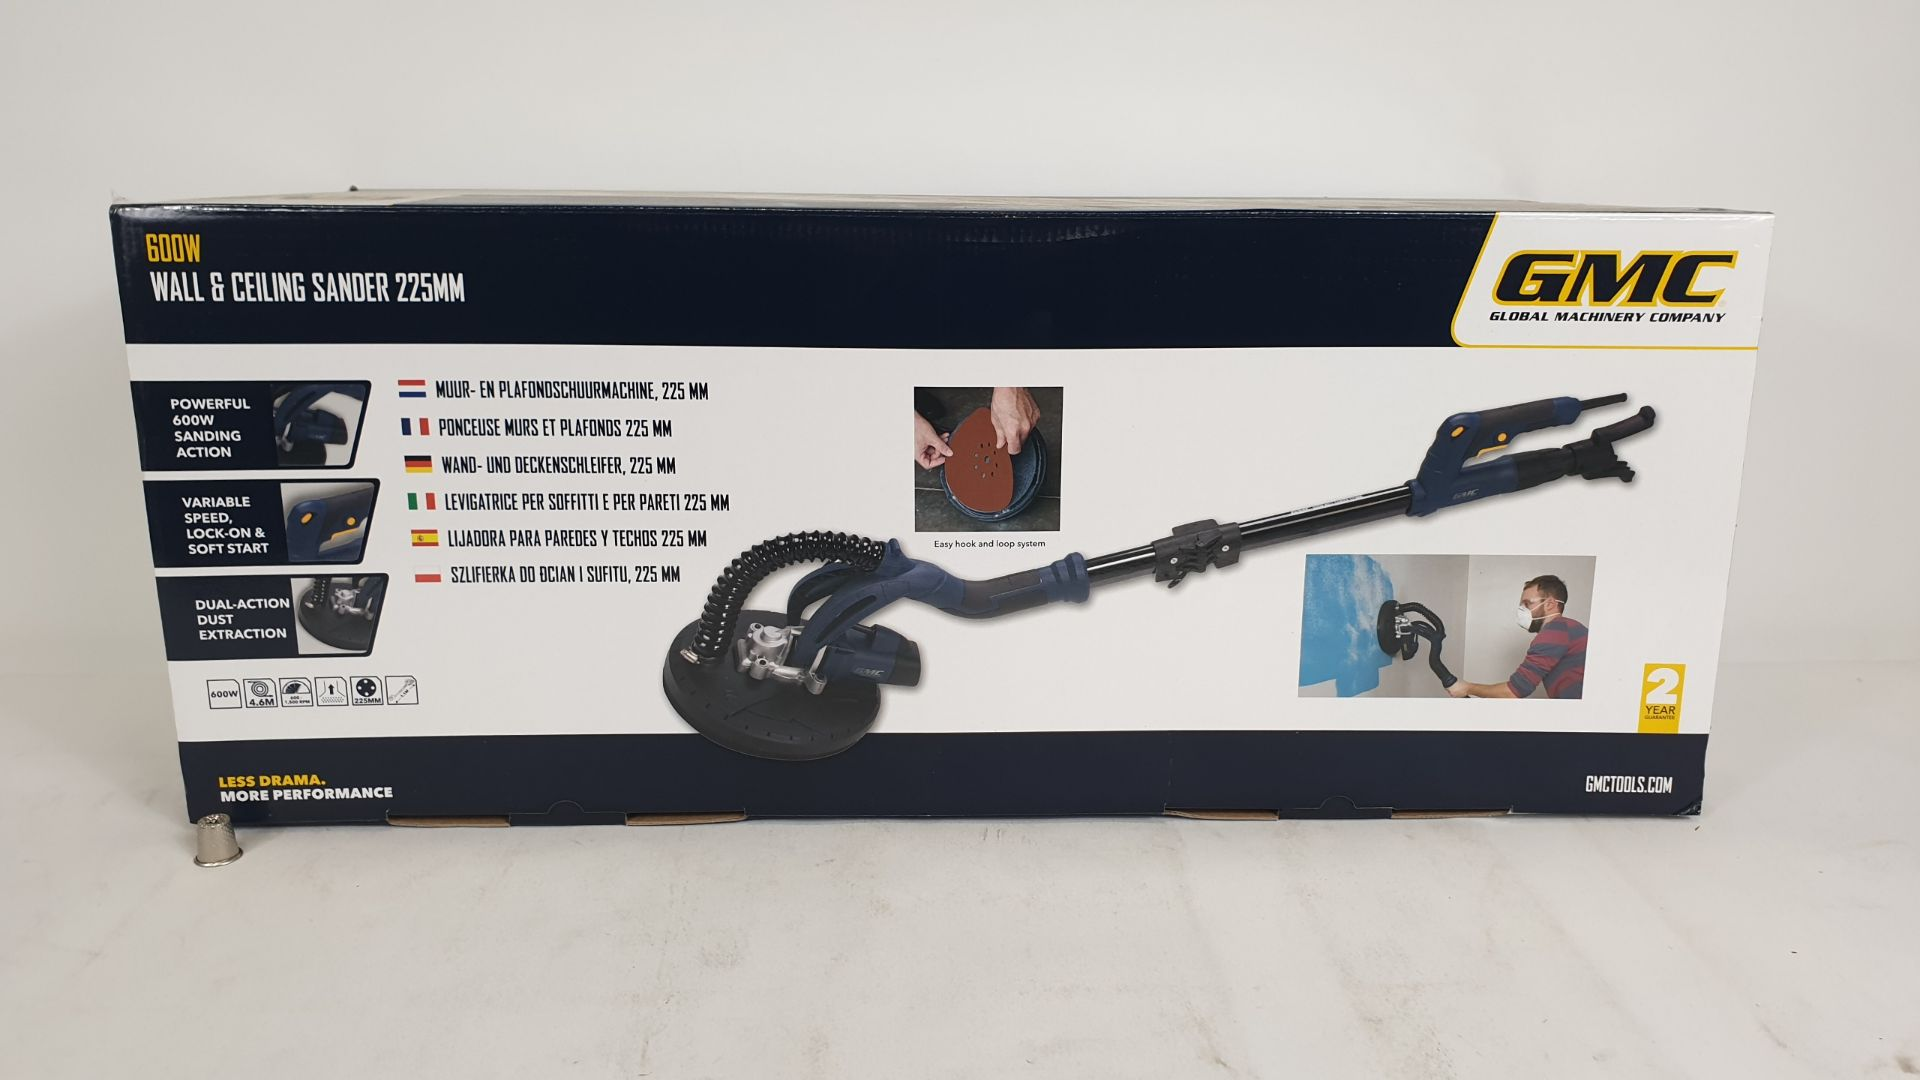 Lot 1551 - (LOT FOR THURSDAY 28TH MAY AUCTION) GMC 600W WALL AND CEILING SANDER 225M (PRODUCT CODE 264803) - (